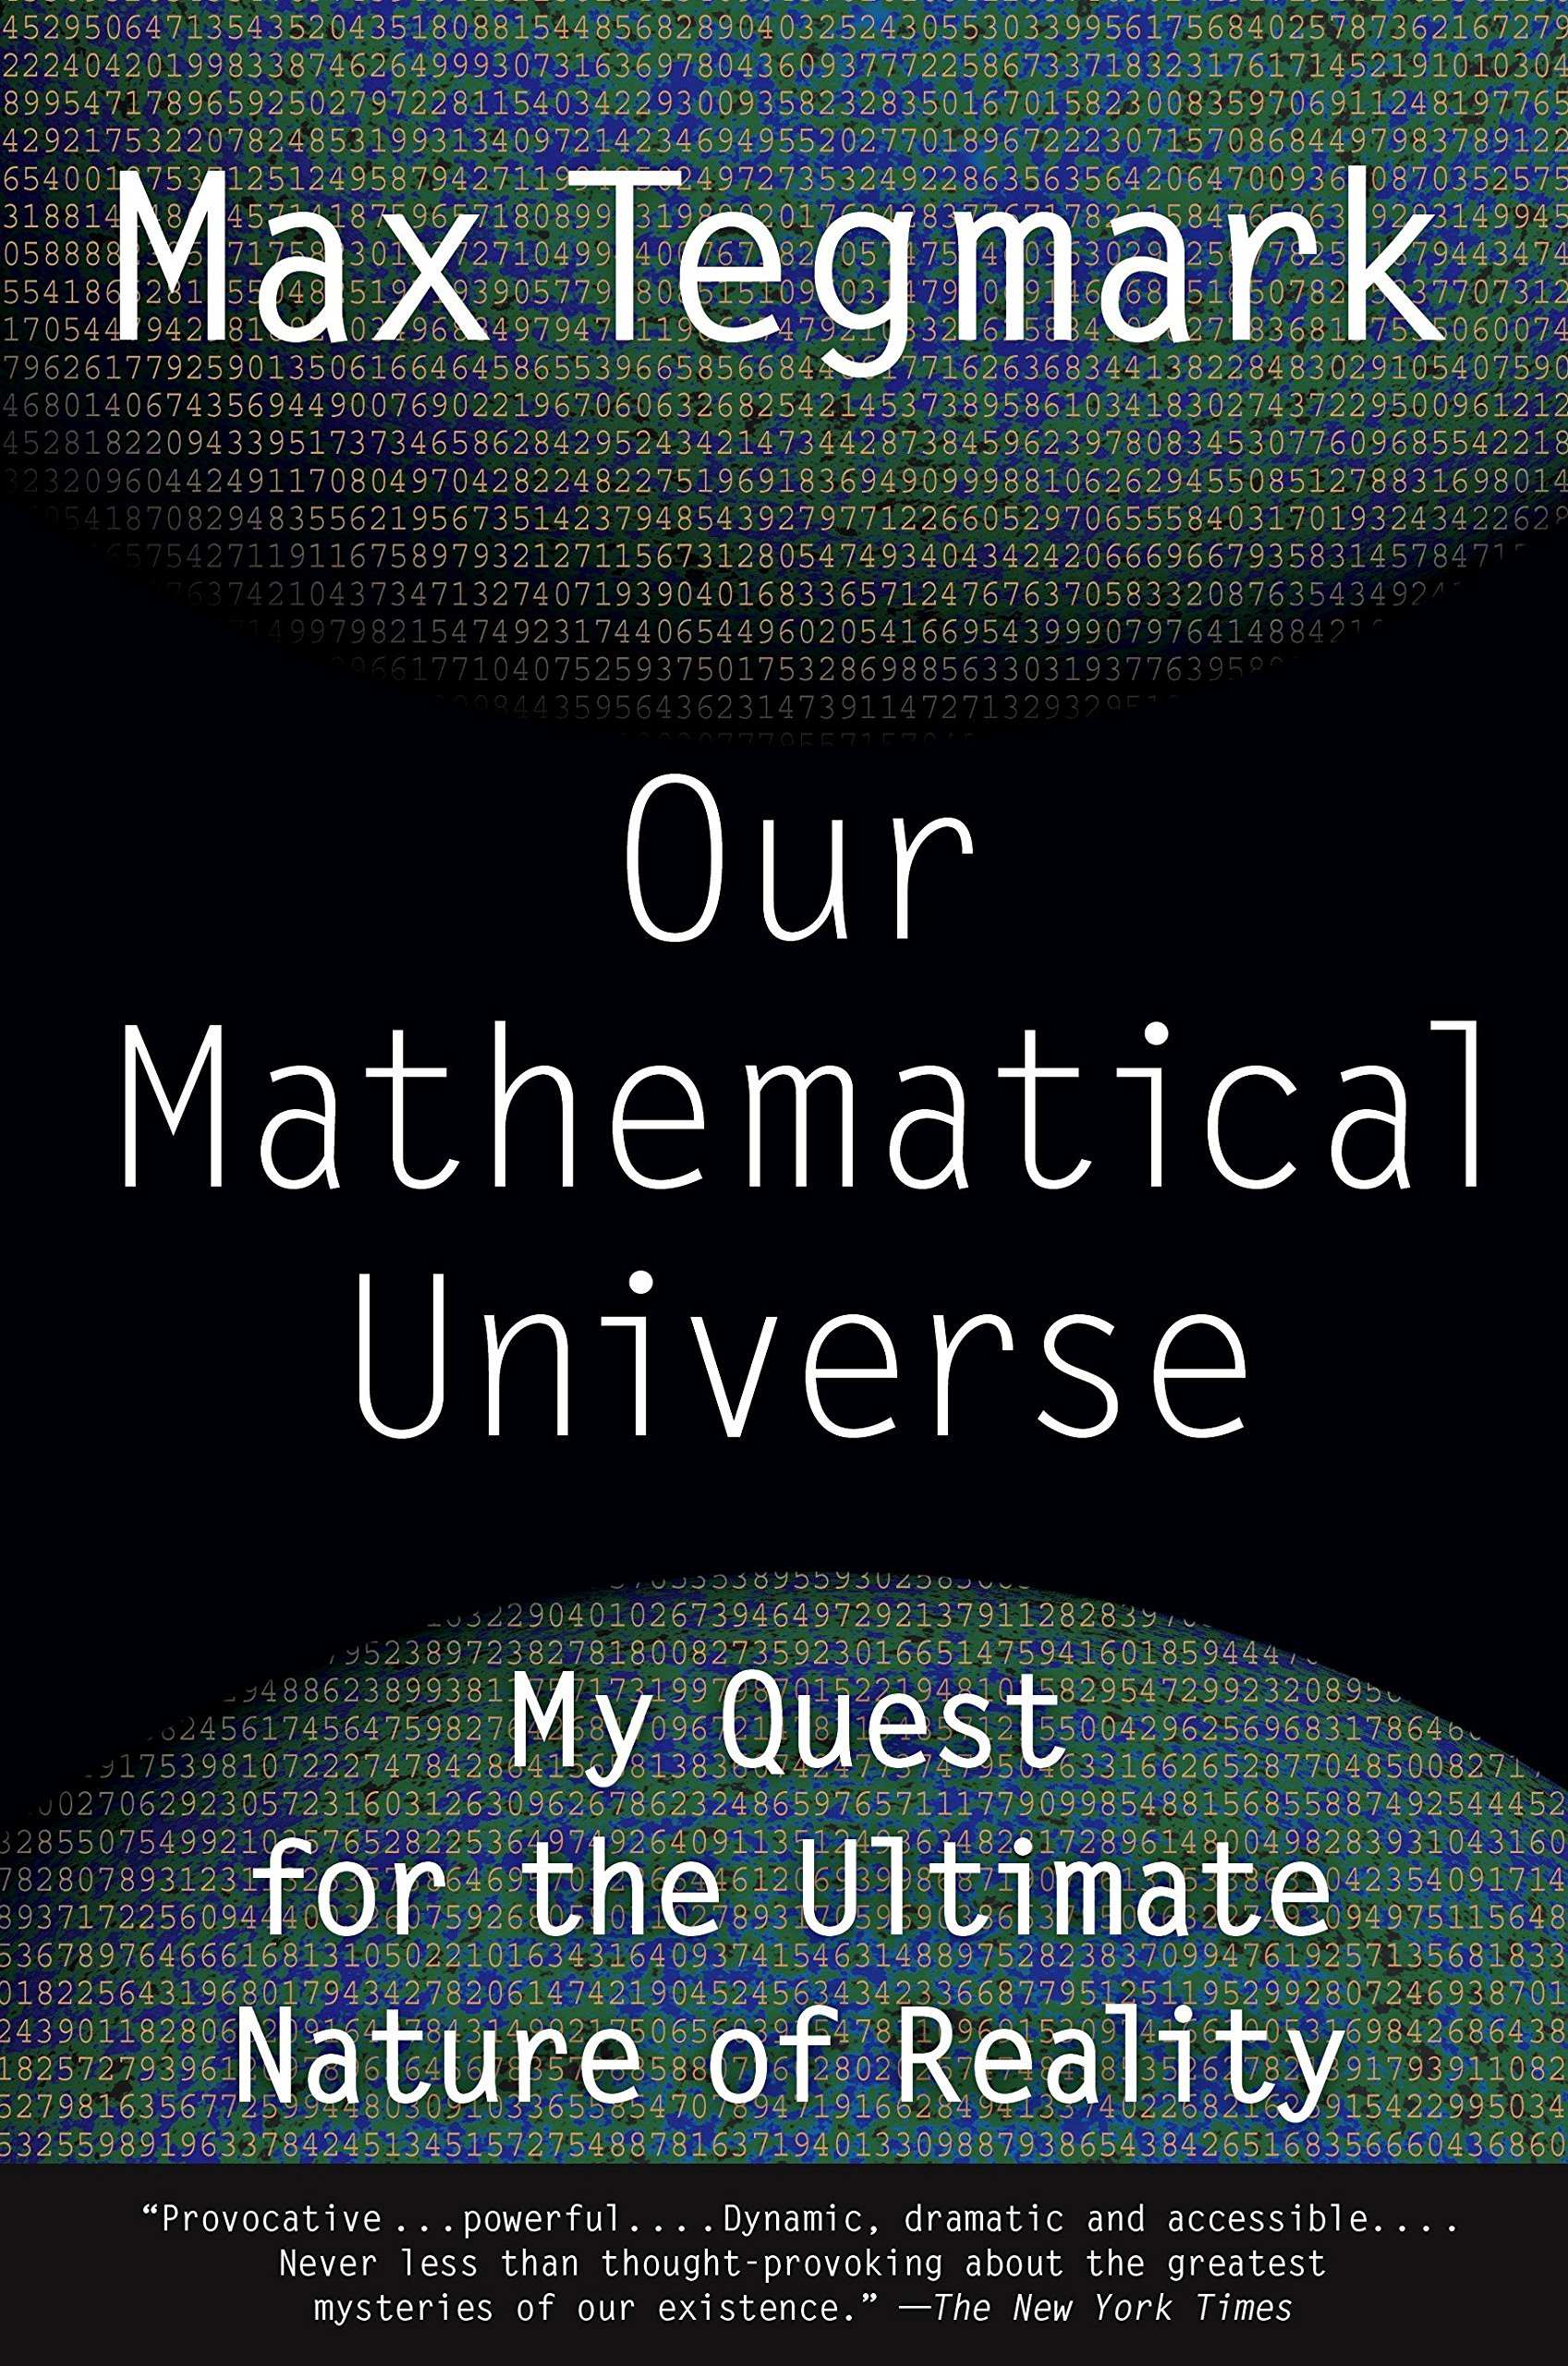 Our Mathematical Universe: My Quest for the Ultimate Nature of Reality: Amazon.es: Max Tegmark: Libros en idiomas extranjeros